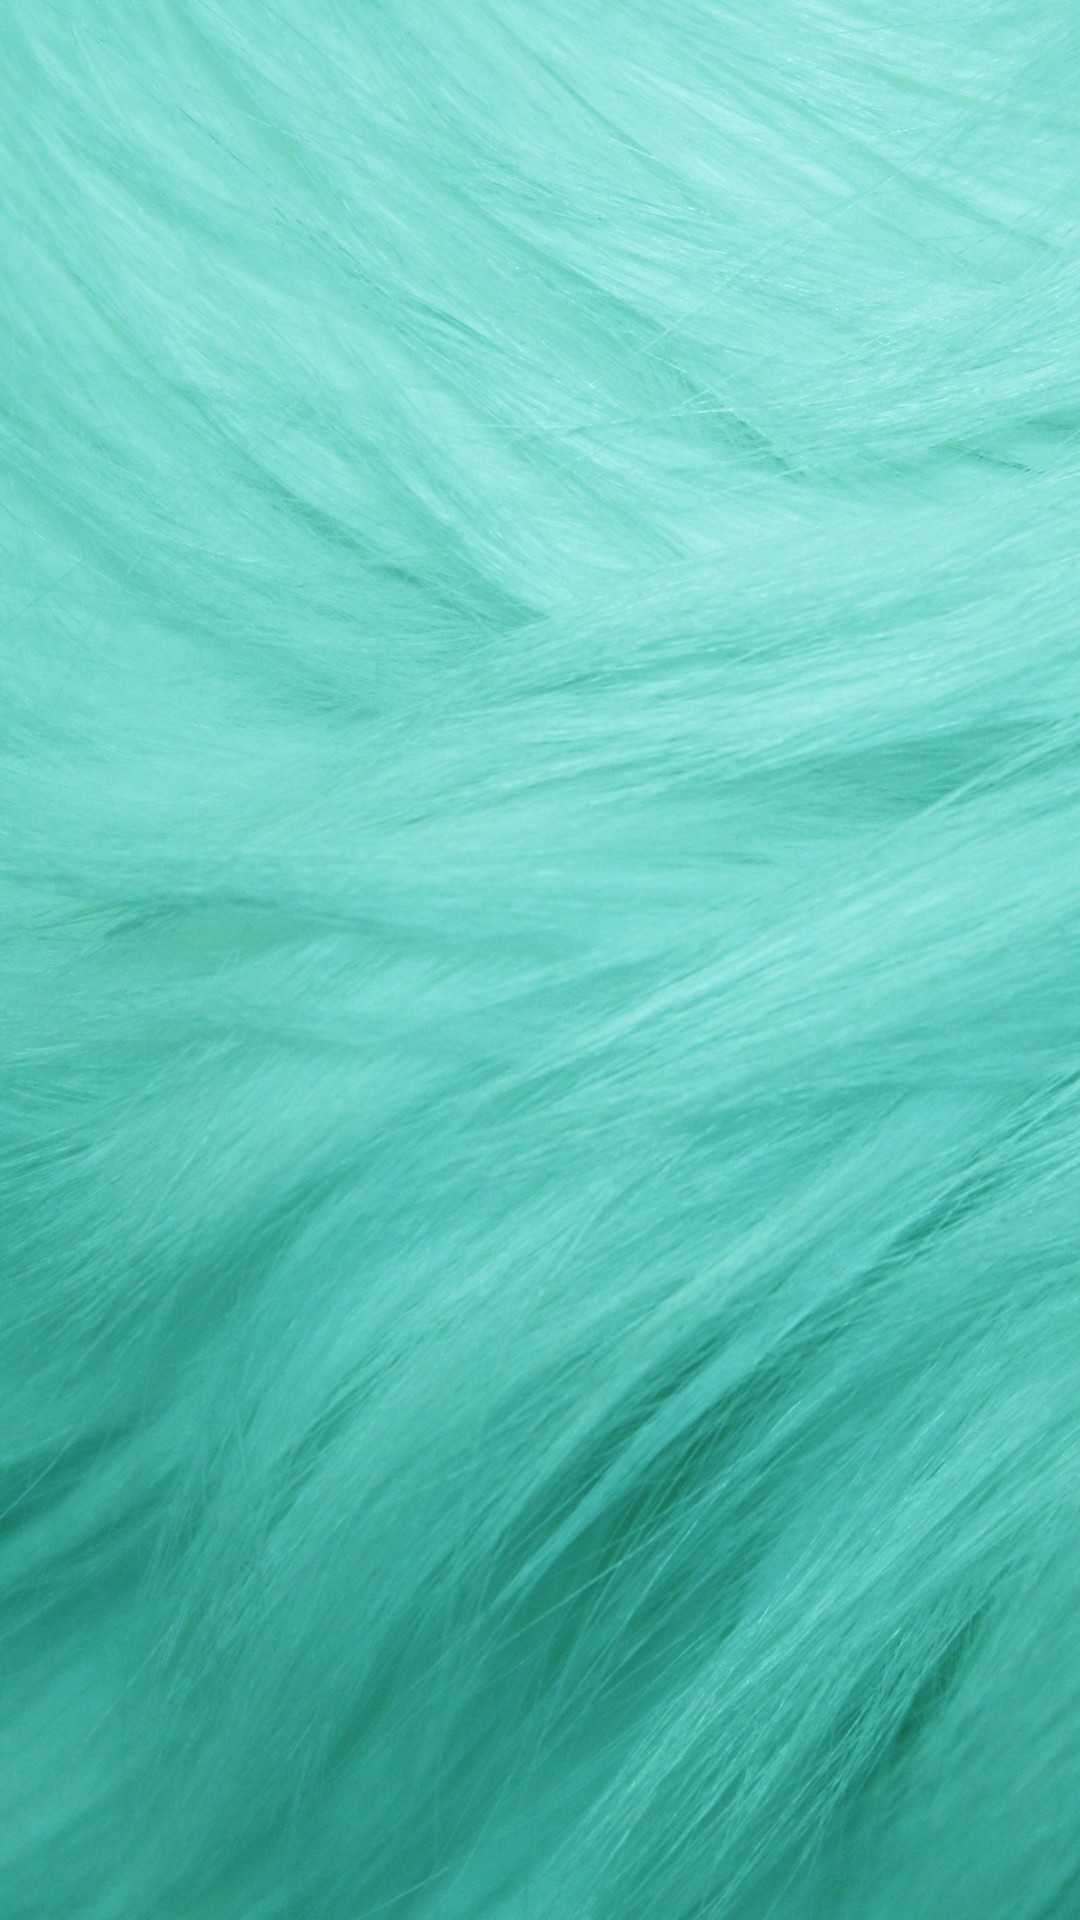 Teal Fur Texture – Tap to see more fluffy wallpapers! – @mobile9